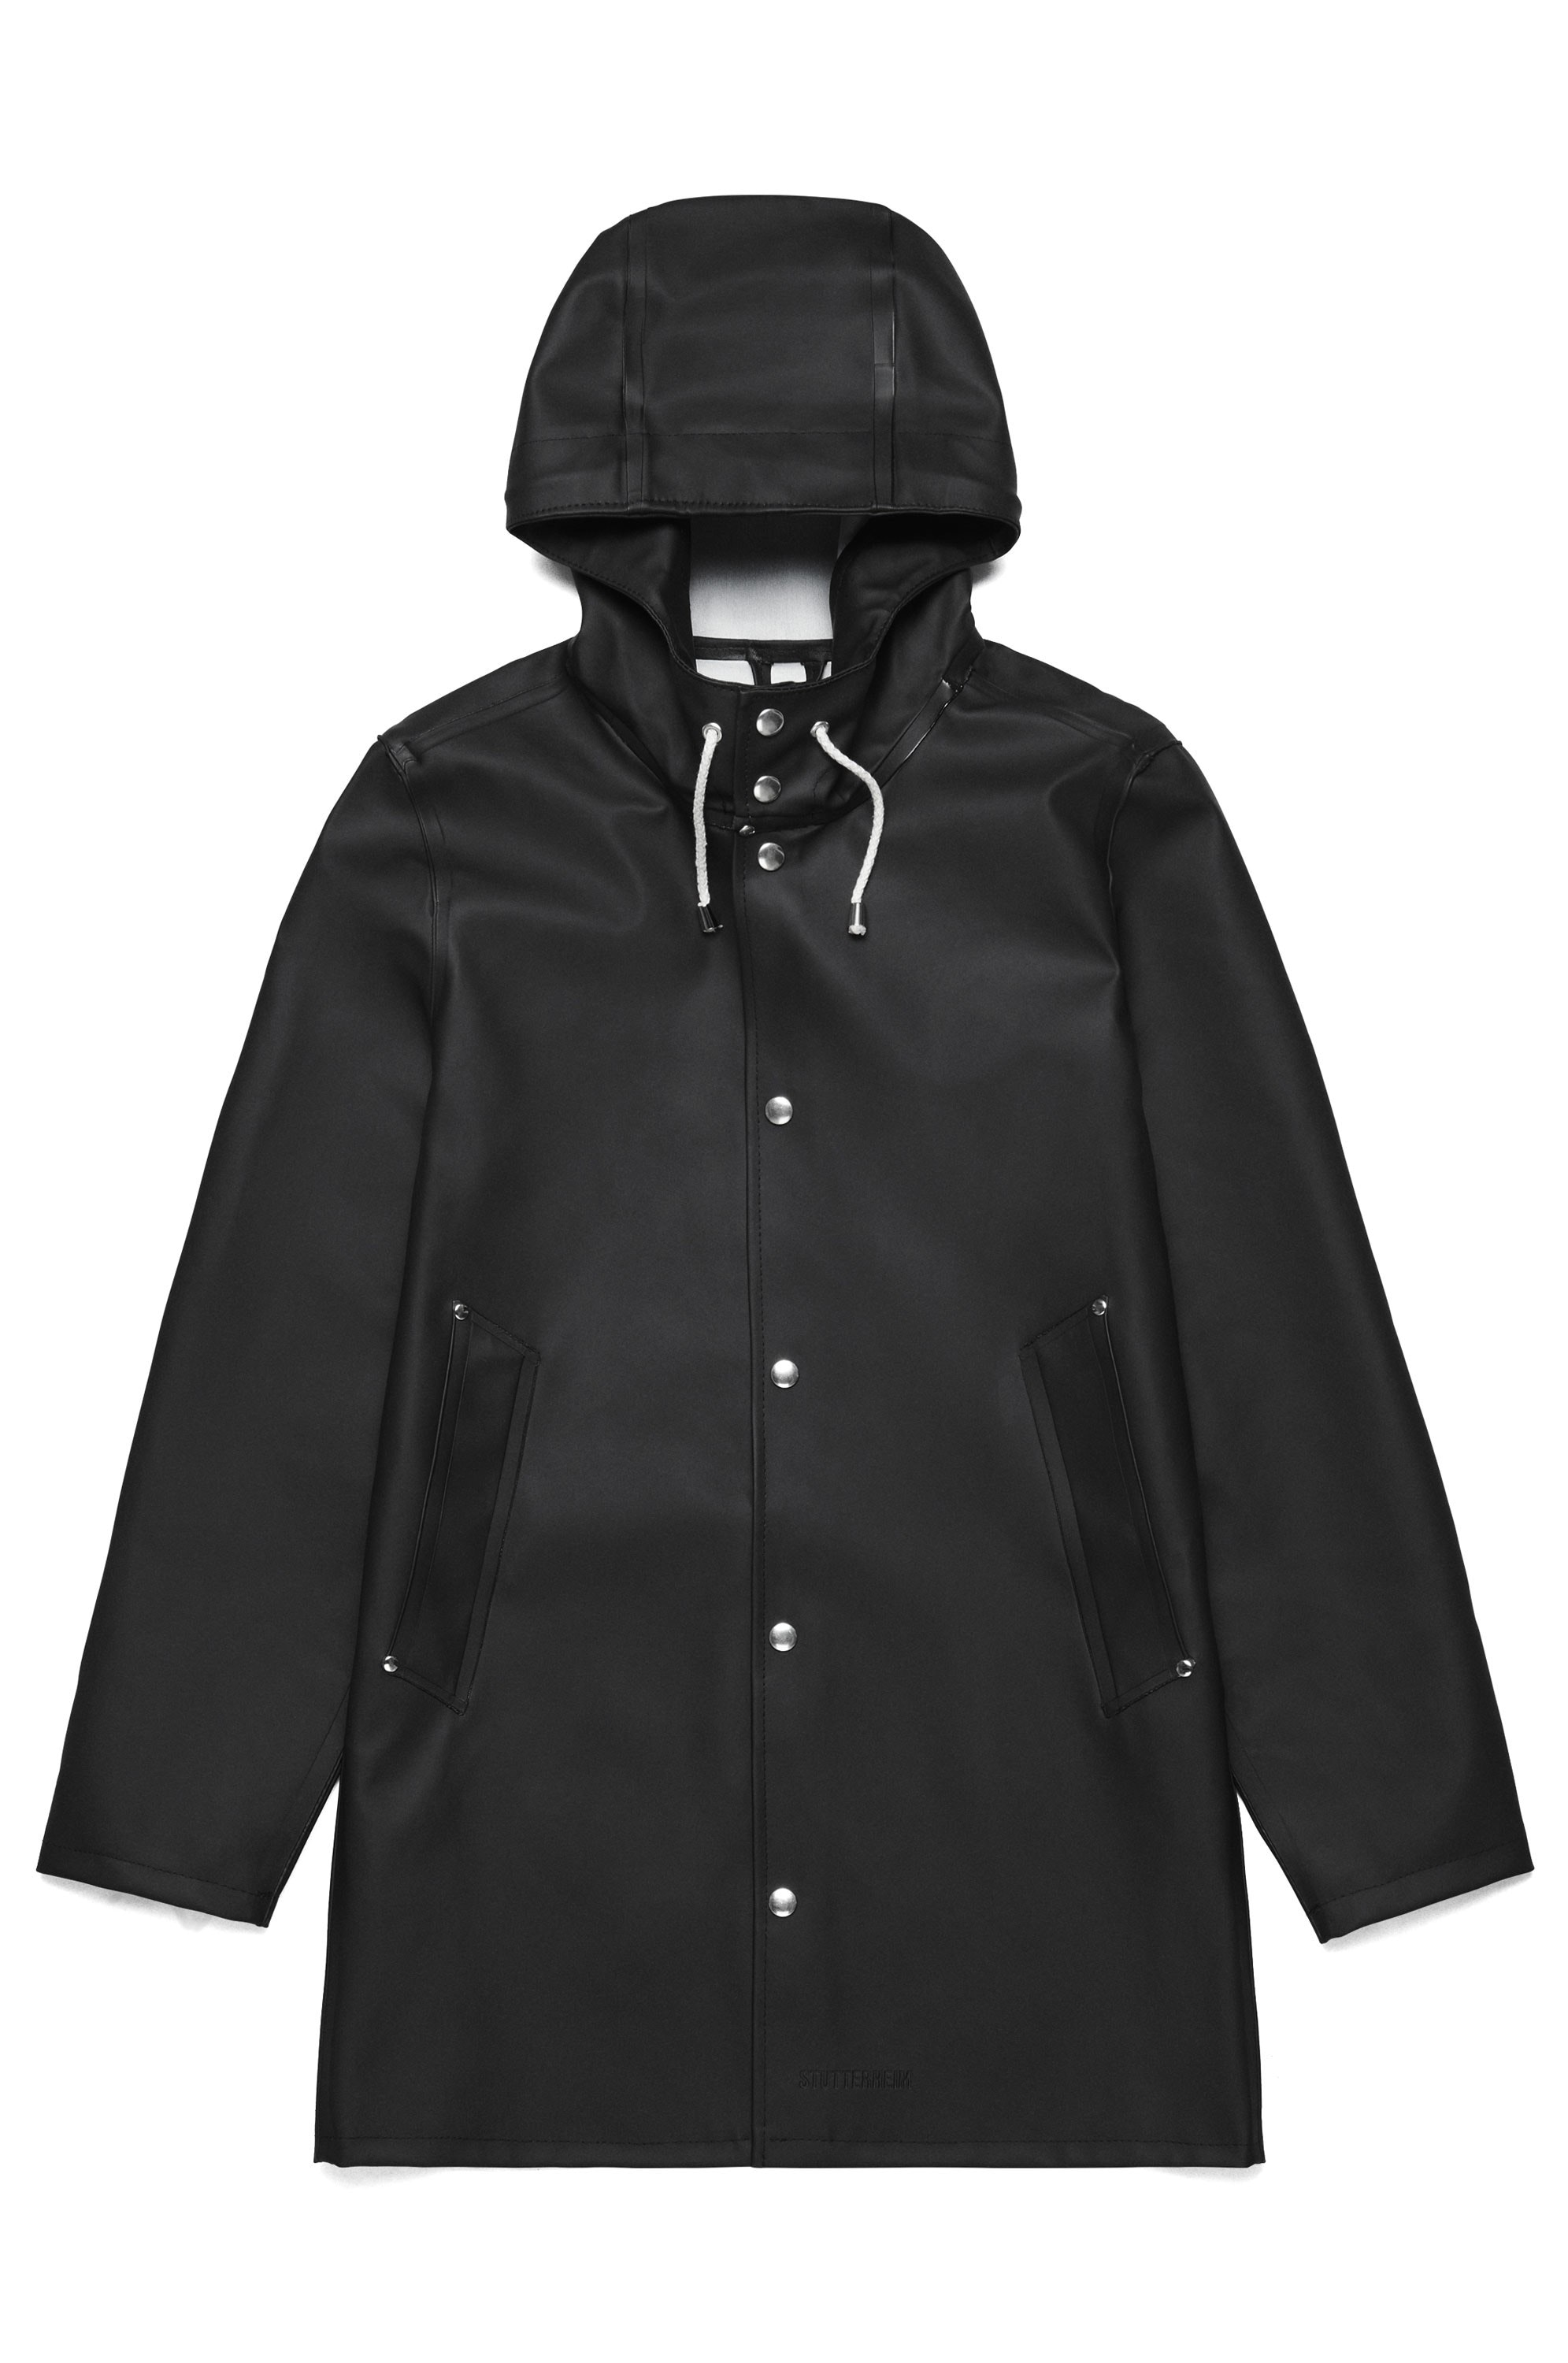 Stutterheim Stockholm Black Raincoat – Stutterheim Raincoats